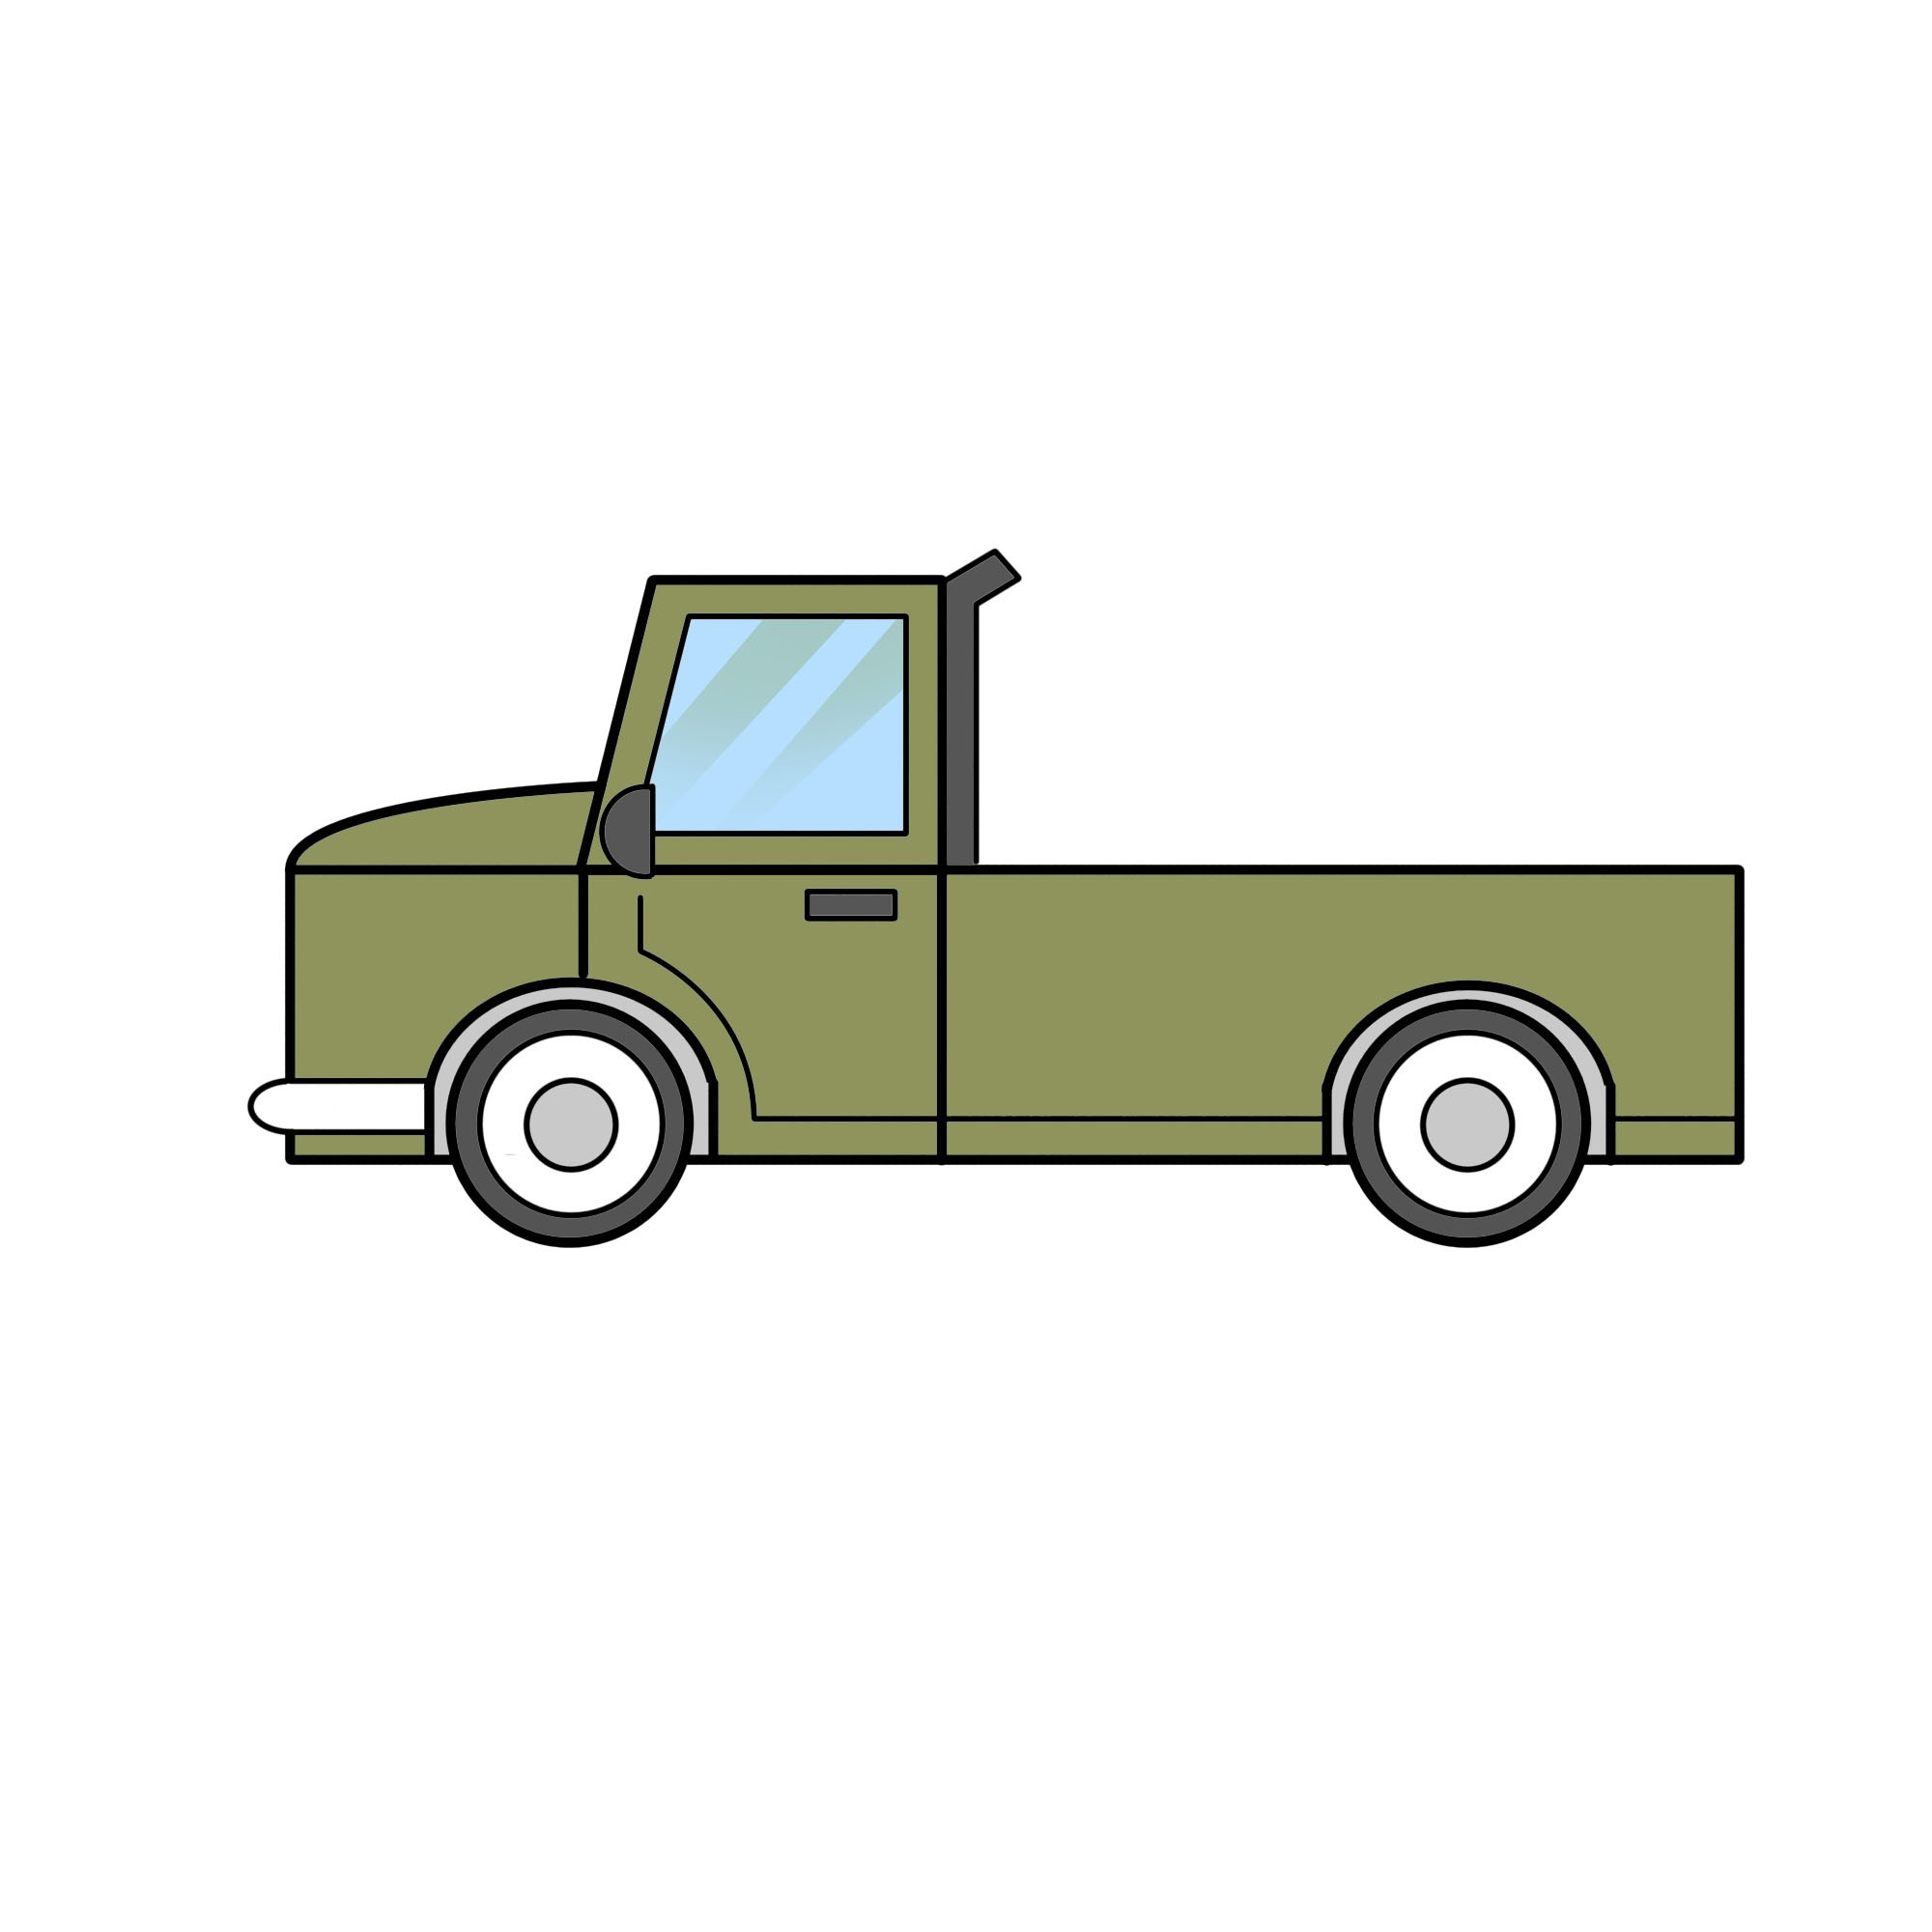 Semi Truck Diagram 2 Easy Ways to Draw A Truck with Wikihow Of Semi Truck Diagram